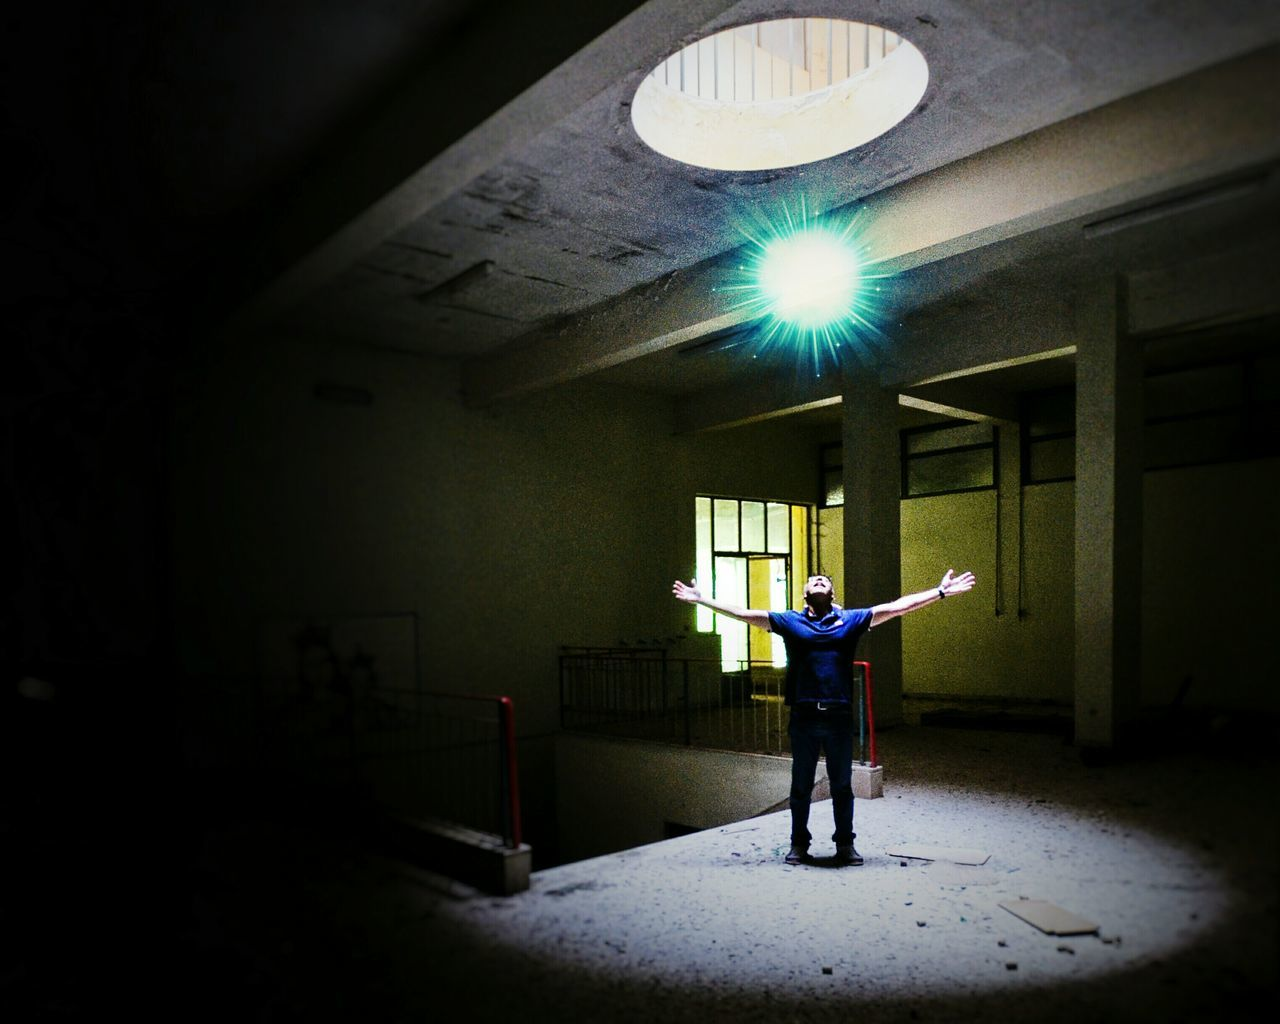 Playing with light One Man Only Full Length Only Men One Person Men Adults Only Adult People Indoors  Day Eye4photography  Open Edit EyeEm Best Shots Fresh 3 Lookingup Light And Shadow Light In The Darkness